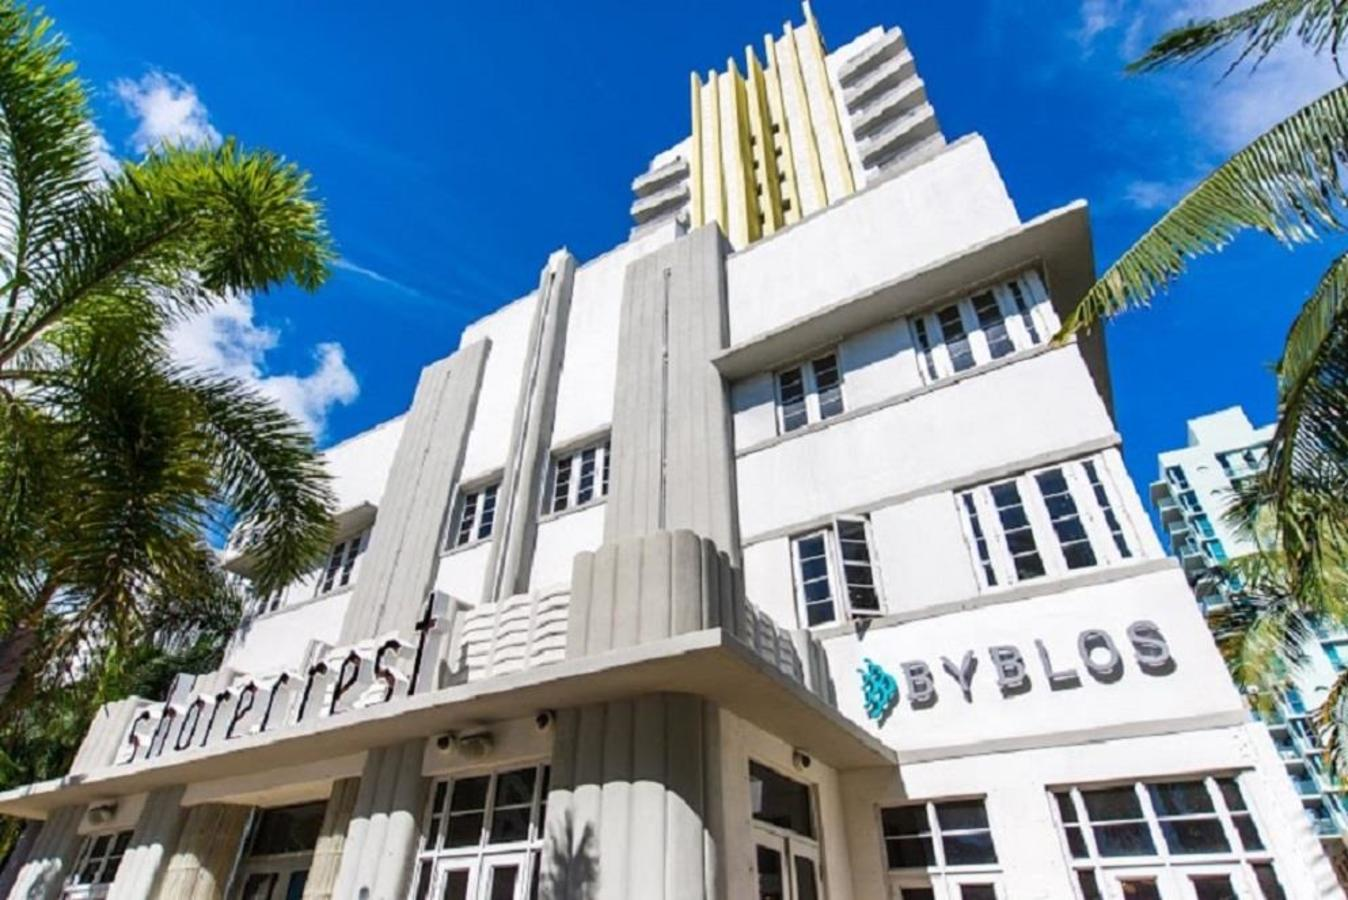 Face of the Shorecrest building, the home of Byblos Miami